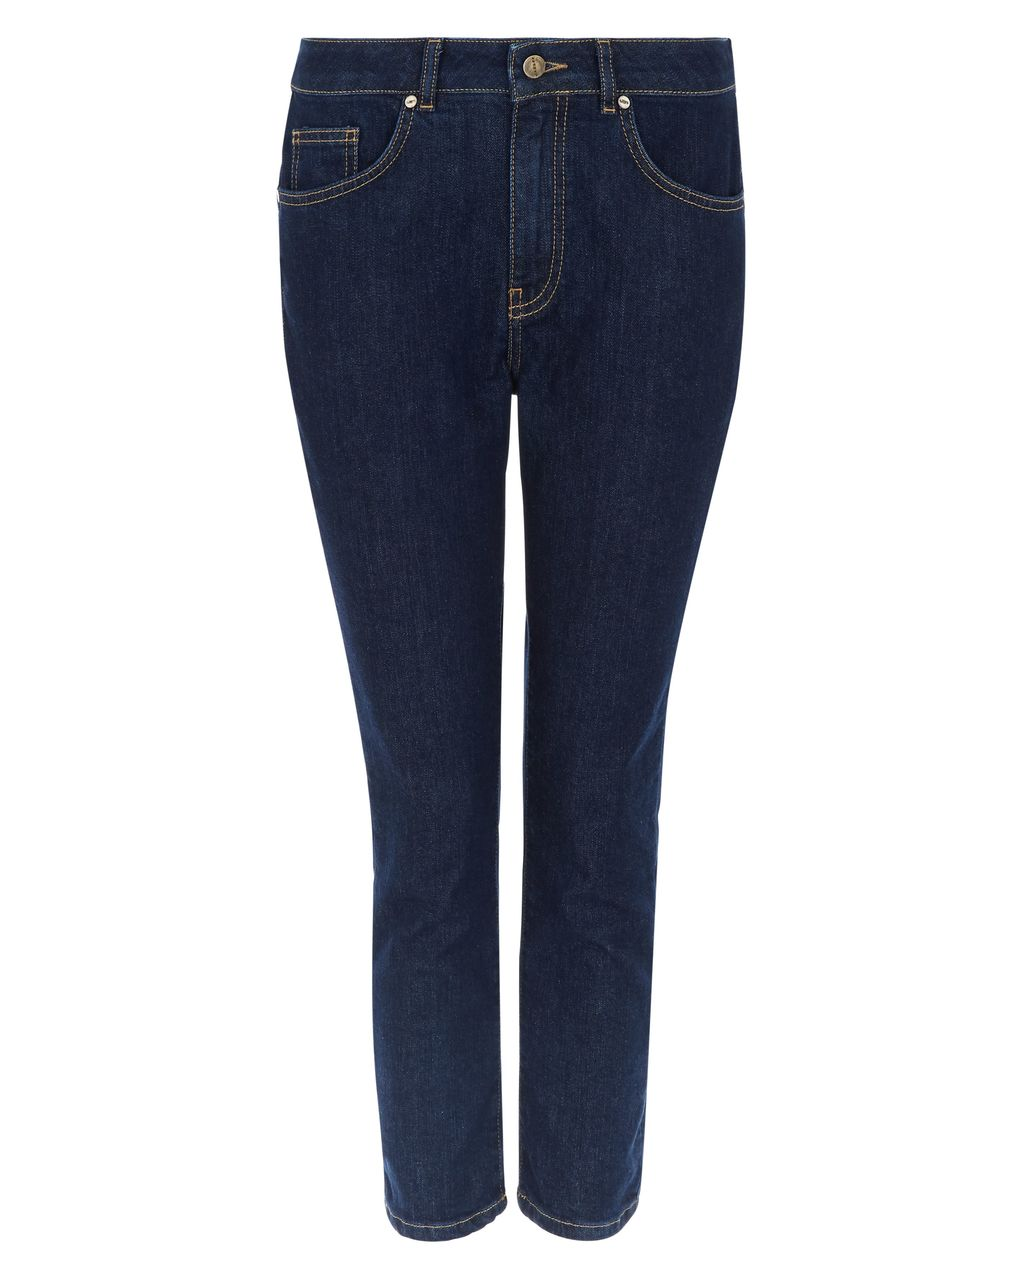 Skinny 7/8 Jeans, Blue - style: skinny leg; pattern: plain; pocket detail: traditional 5 pocket; waist: mid/regular rise; predominant colour: navy; occasions: casual; length: calf length; fibres: cotton - stretch; texture group: denim; pattern type: fabric; season: s/s 2016